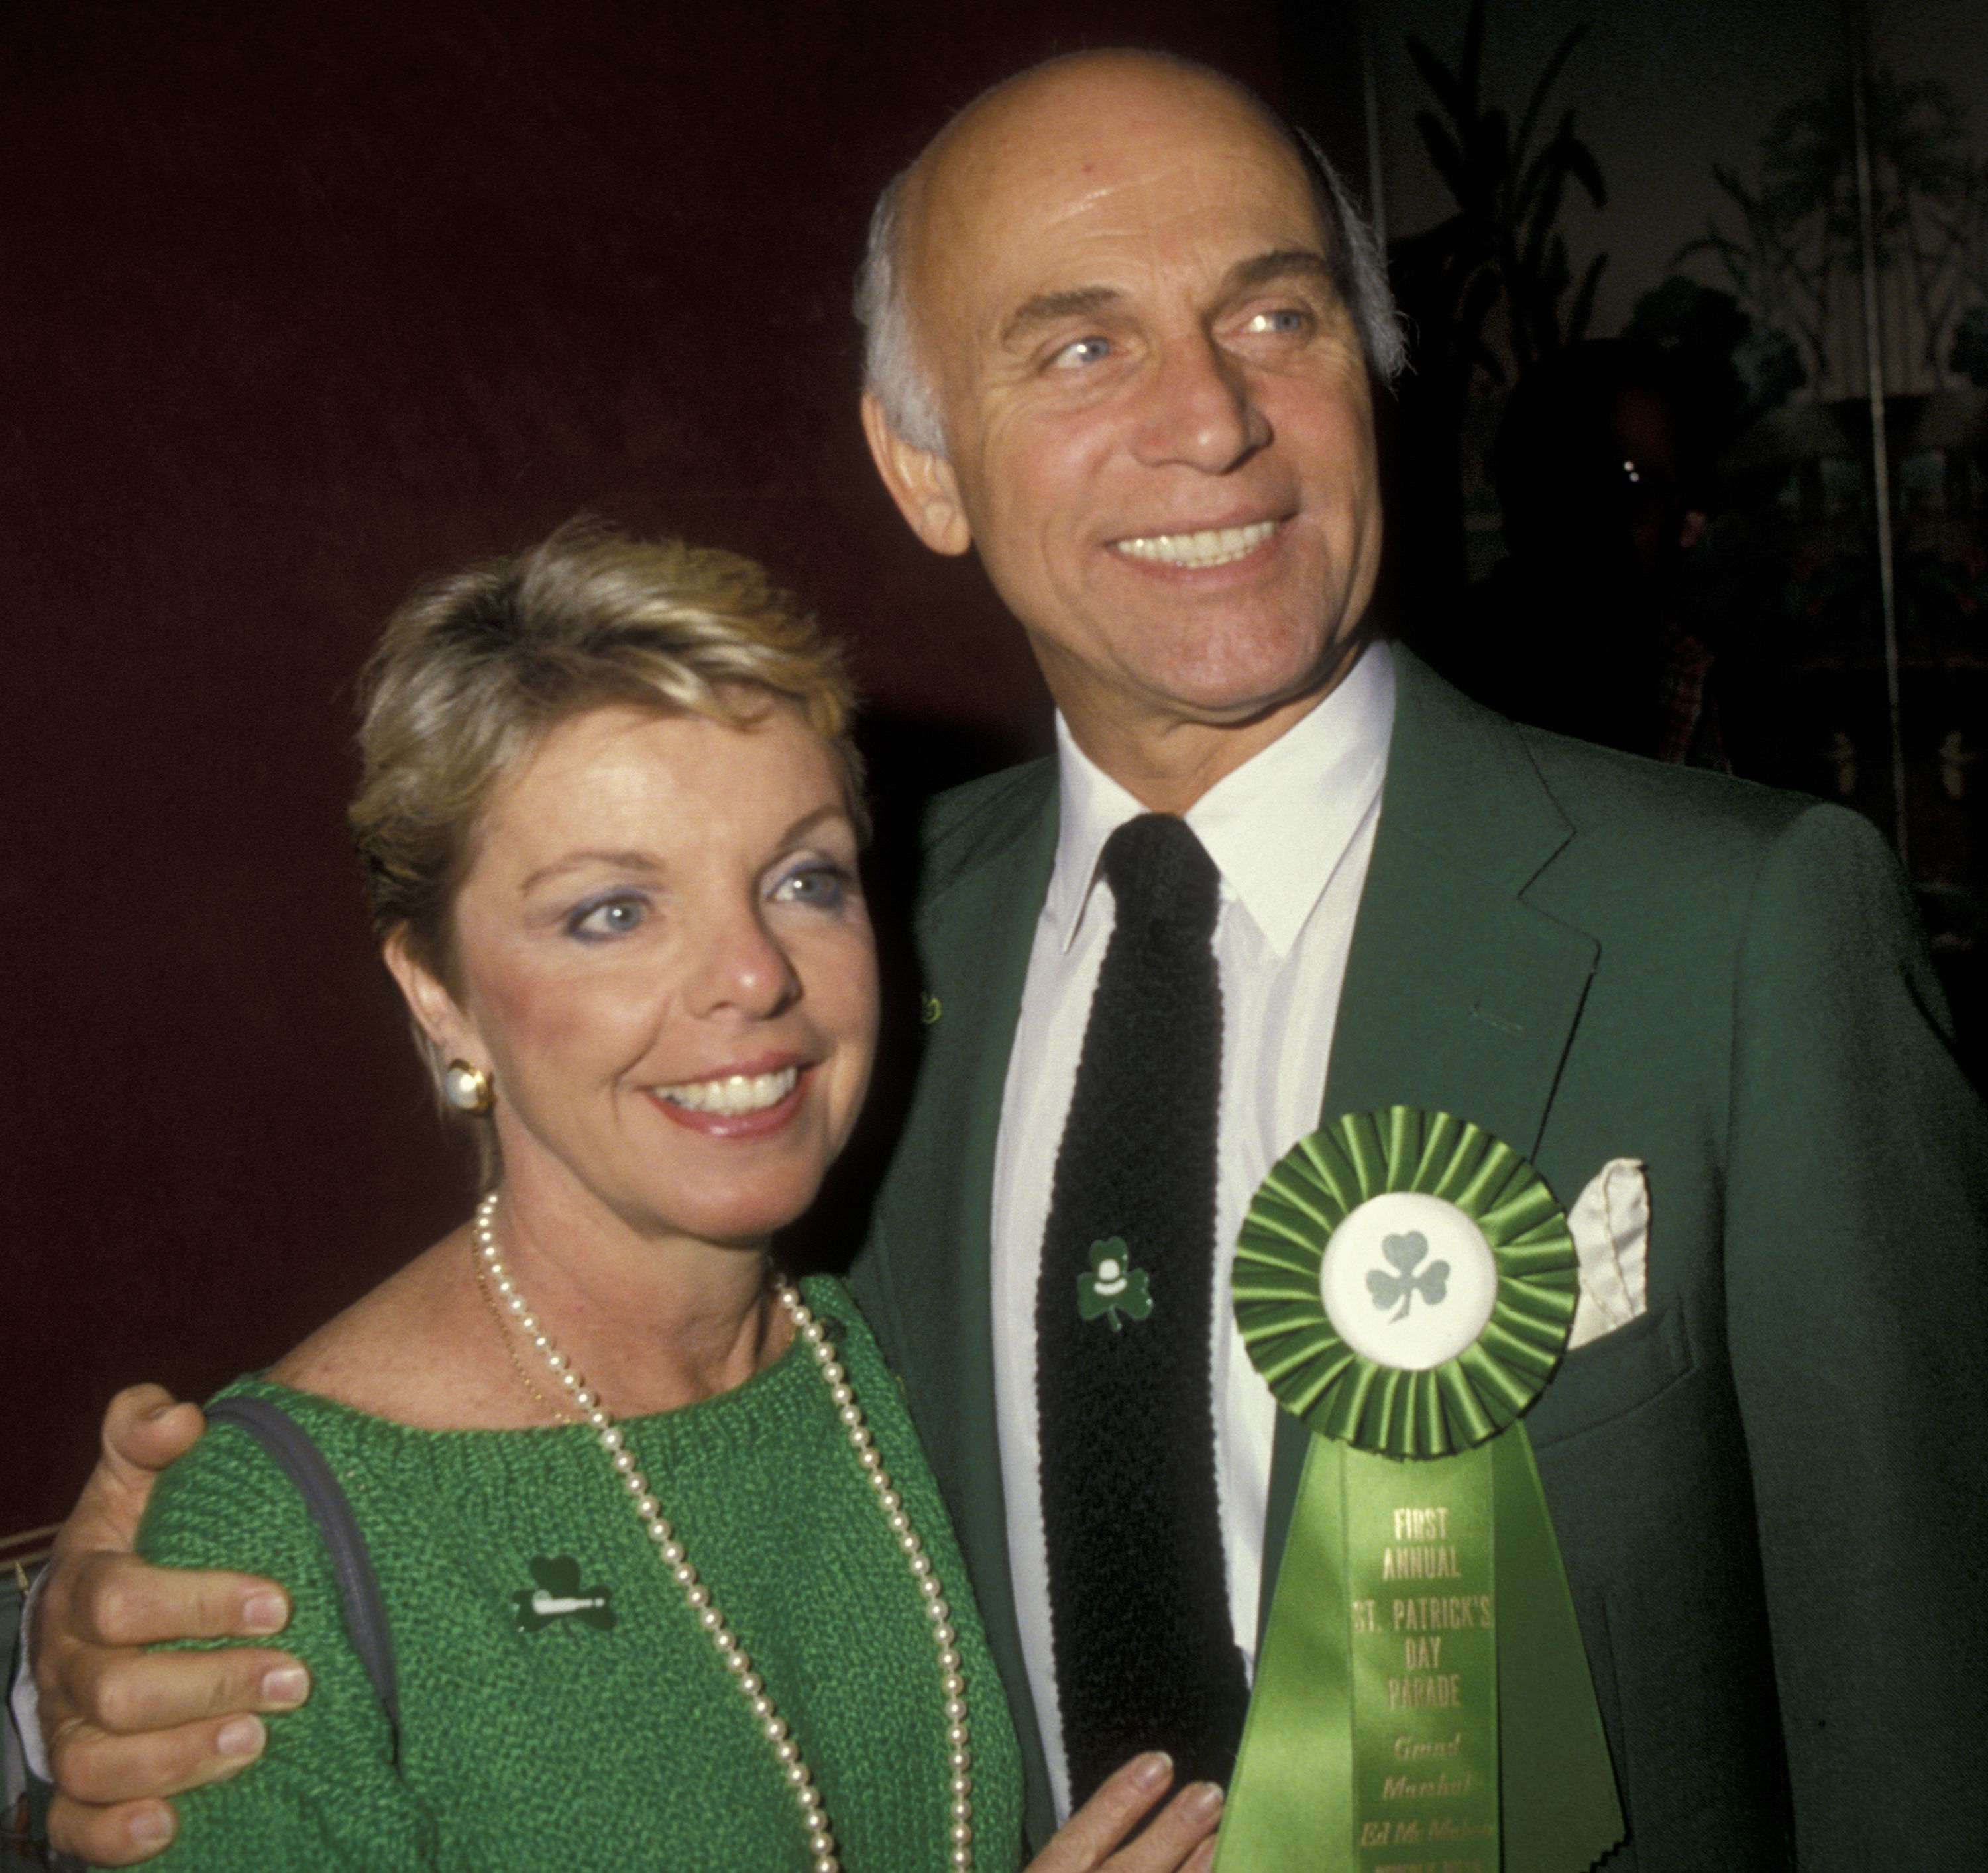 r Gavin MacLeod and wife Patti MacLeod at the First Annual St. Patrick's Day Parade in Beverly Hills in1985 | Source: Getty Images